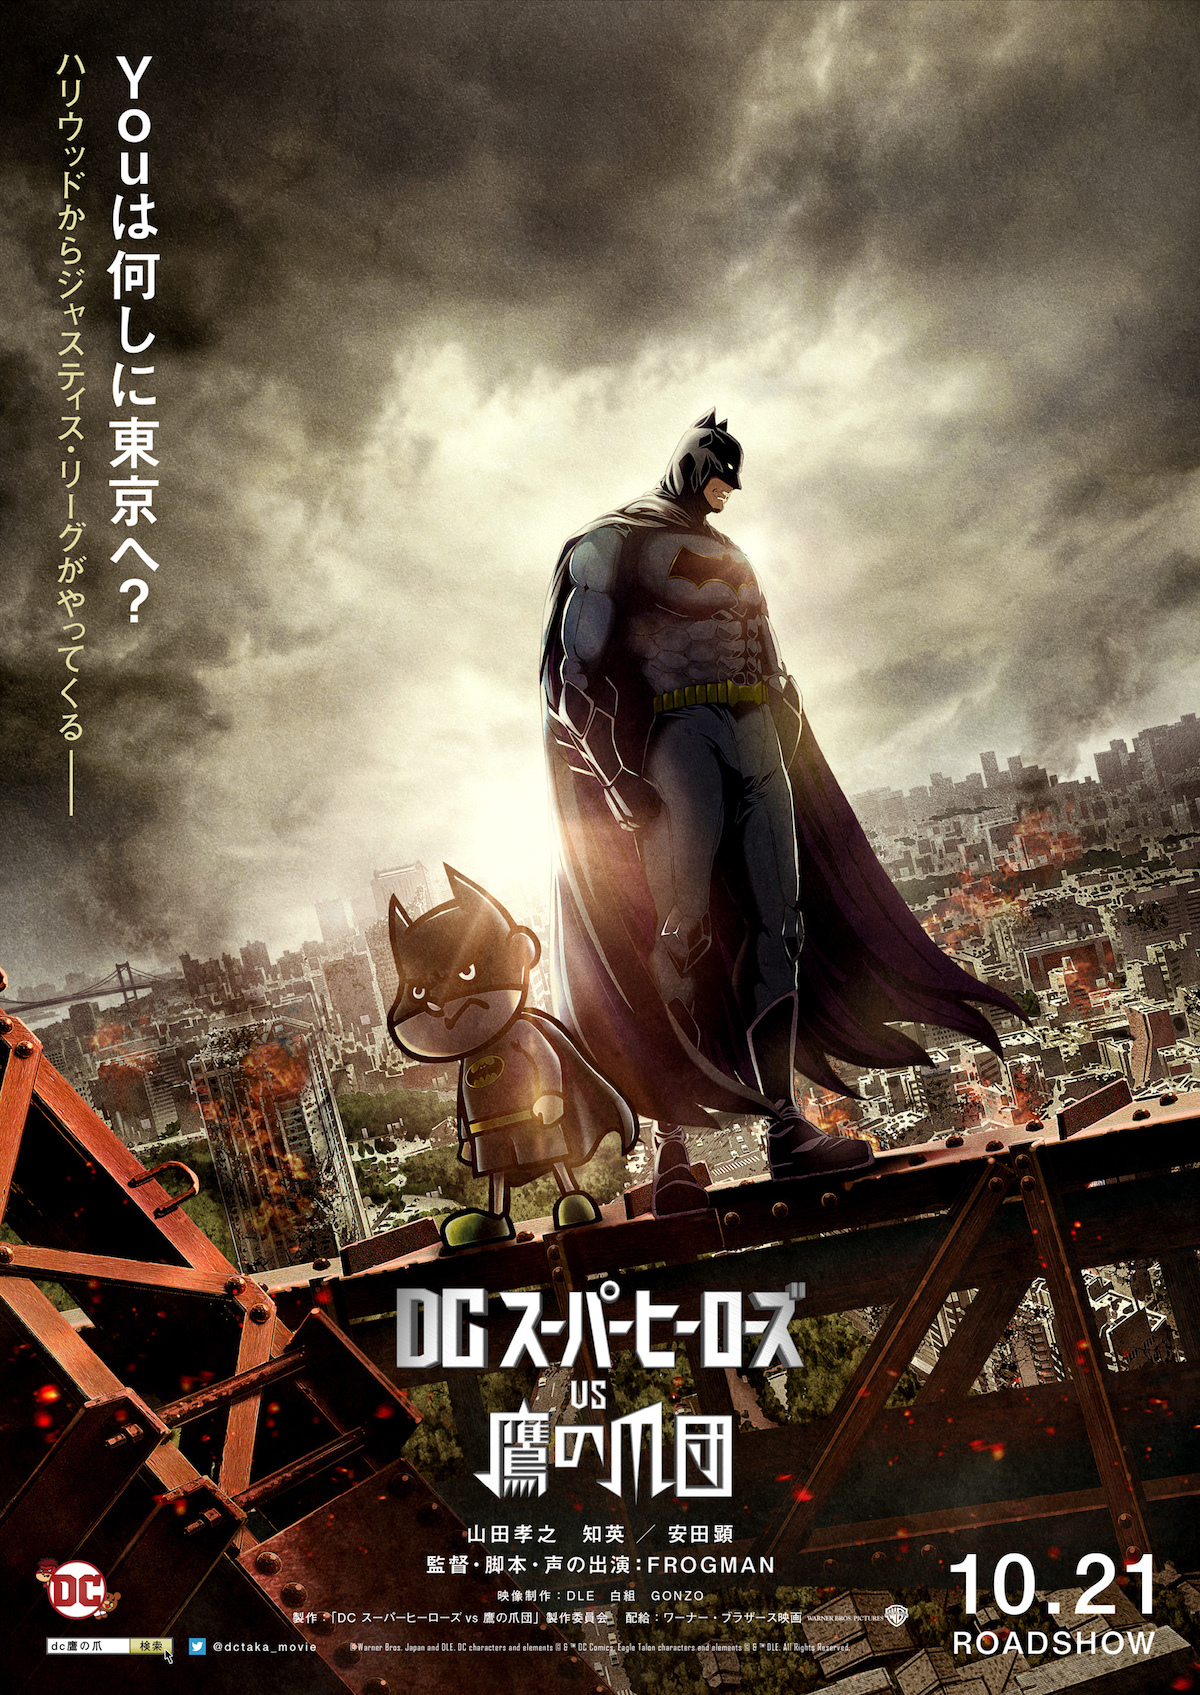 映画『DCスーパーヒーローズvs鷹の爪団』(C)Warner Bros. Japan and DLE. DC characters and elements  (C) & ™ DC Comics. Eagle Talon characters and elements (C) & ™ DLE. All Rights Reserved.